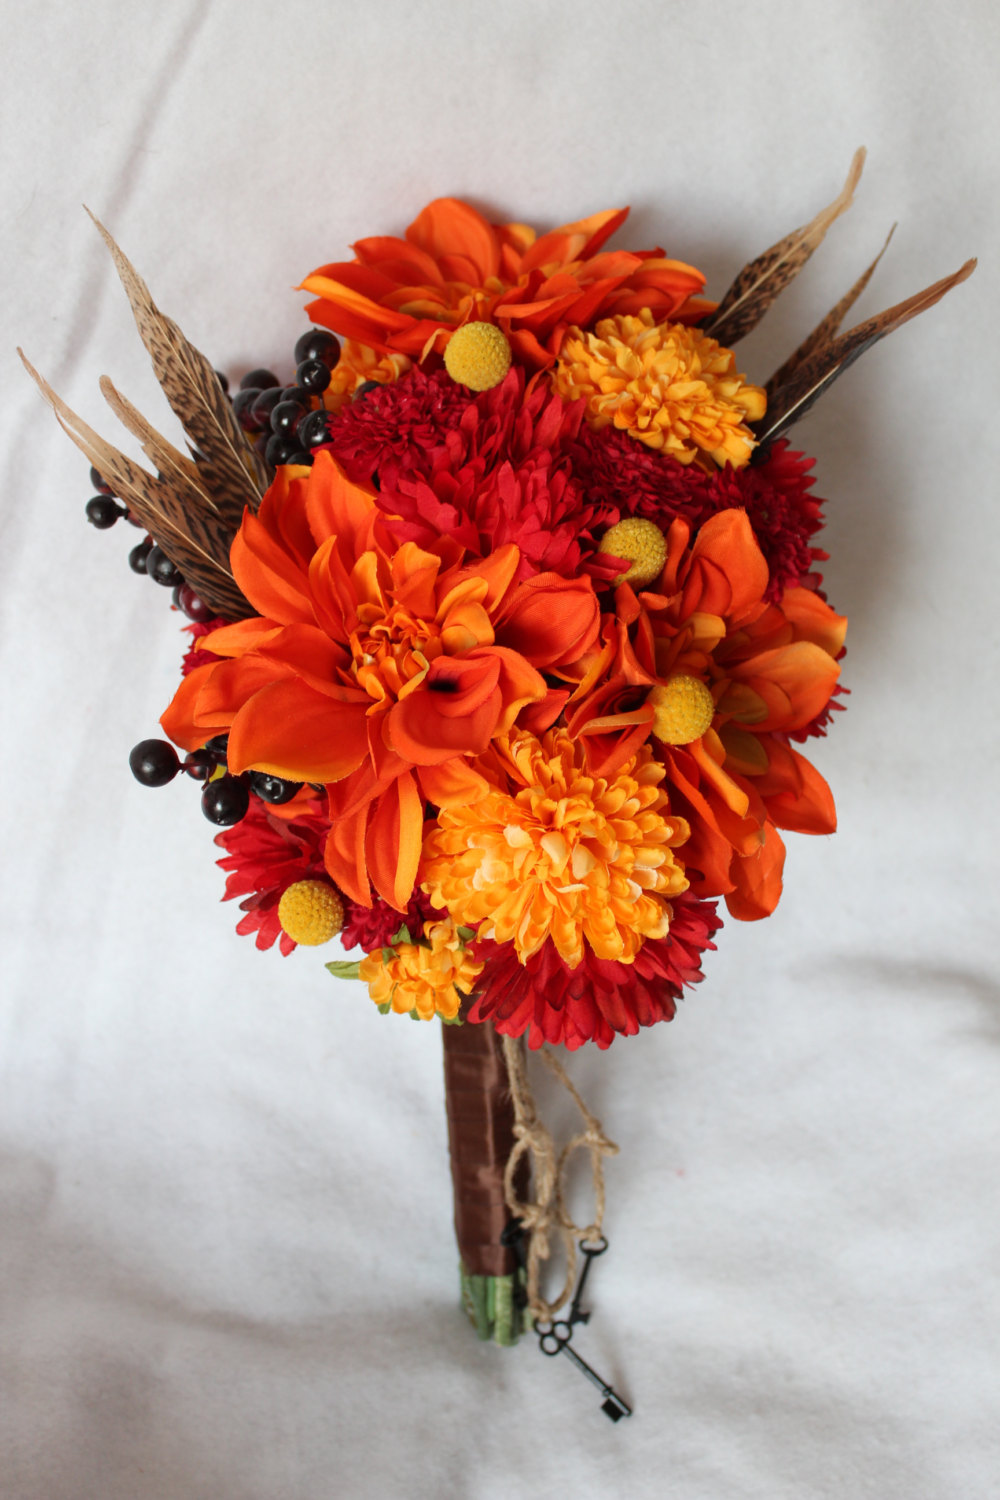 minneapolis-Fall-Silk-Flower-Bridal-Bouquet-with-Dahlia-Berries-Pom-Pom-and-Spider-Mums-Craspedia-Pheasant-Feathers-&-Matching-Boutonniere.jpg